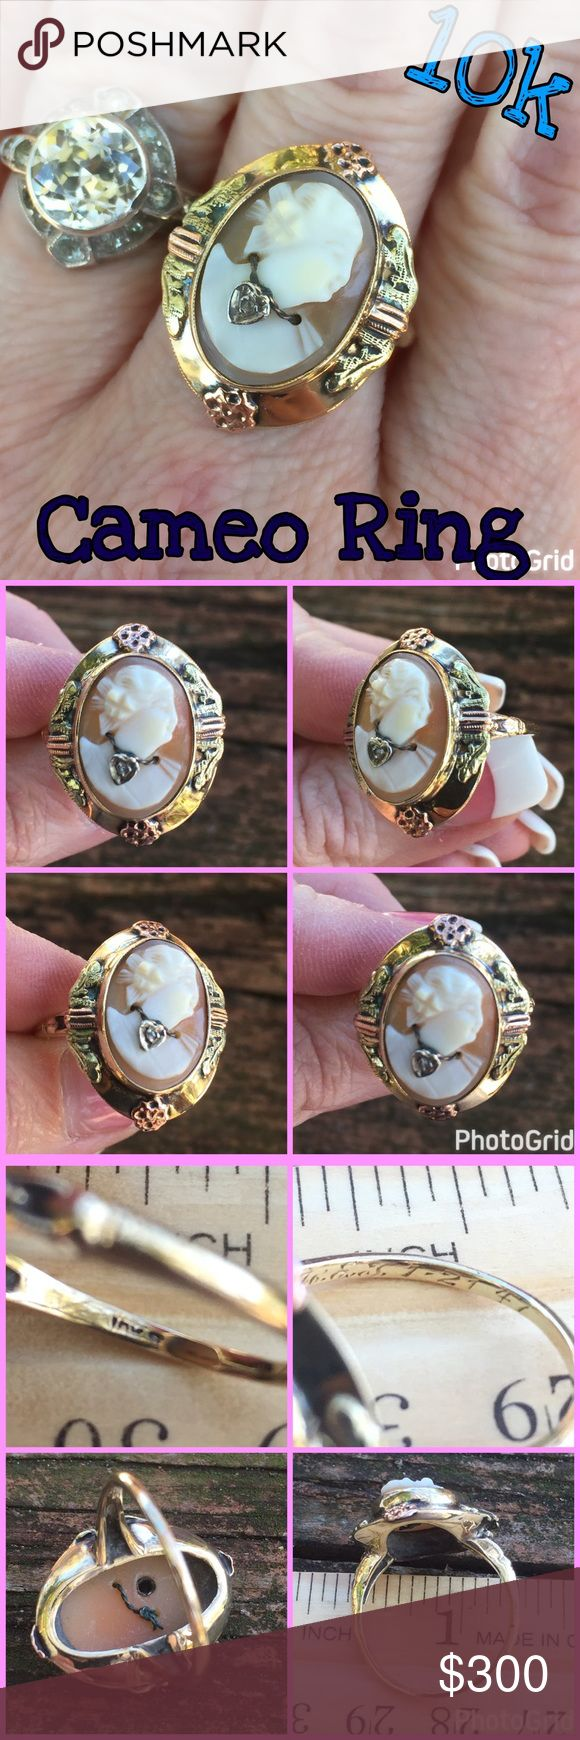 40's Vintage 10k Cameo w/ beautiful detail Ring Wow! Beautifully Detailed 10k Yellow Gold Vintage Cameo w/ Diamond Heart Necklace Ring. Size 8. Marked: 10k S 1947 w/ engraving I can't make out. Weight 4.45 grams. If this ring could talk.. 💗 The ring is vintage, pre-owned & will show some signs of having been worn. Listing Images Are Of The Item Being Offered. Please ask all questions before purchase. I ship same day! Buy w/ confidence 380 5 star feedback. Please make any reasonable offers…